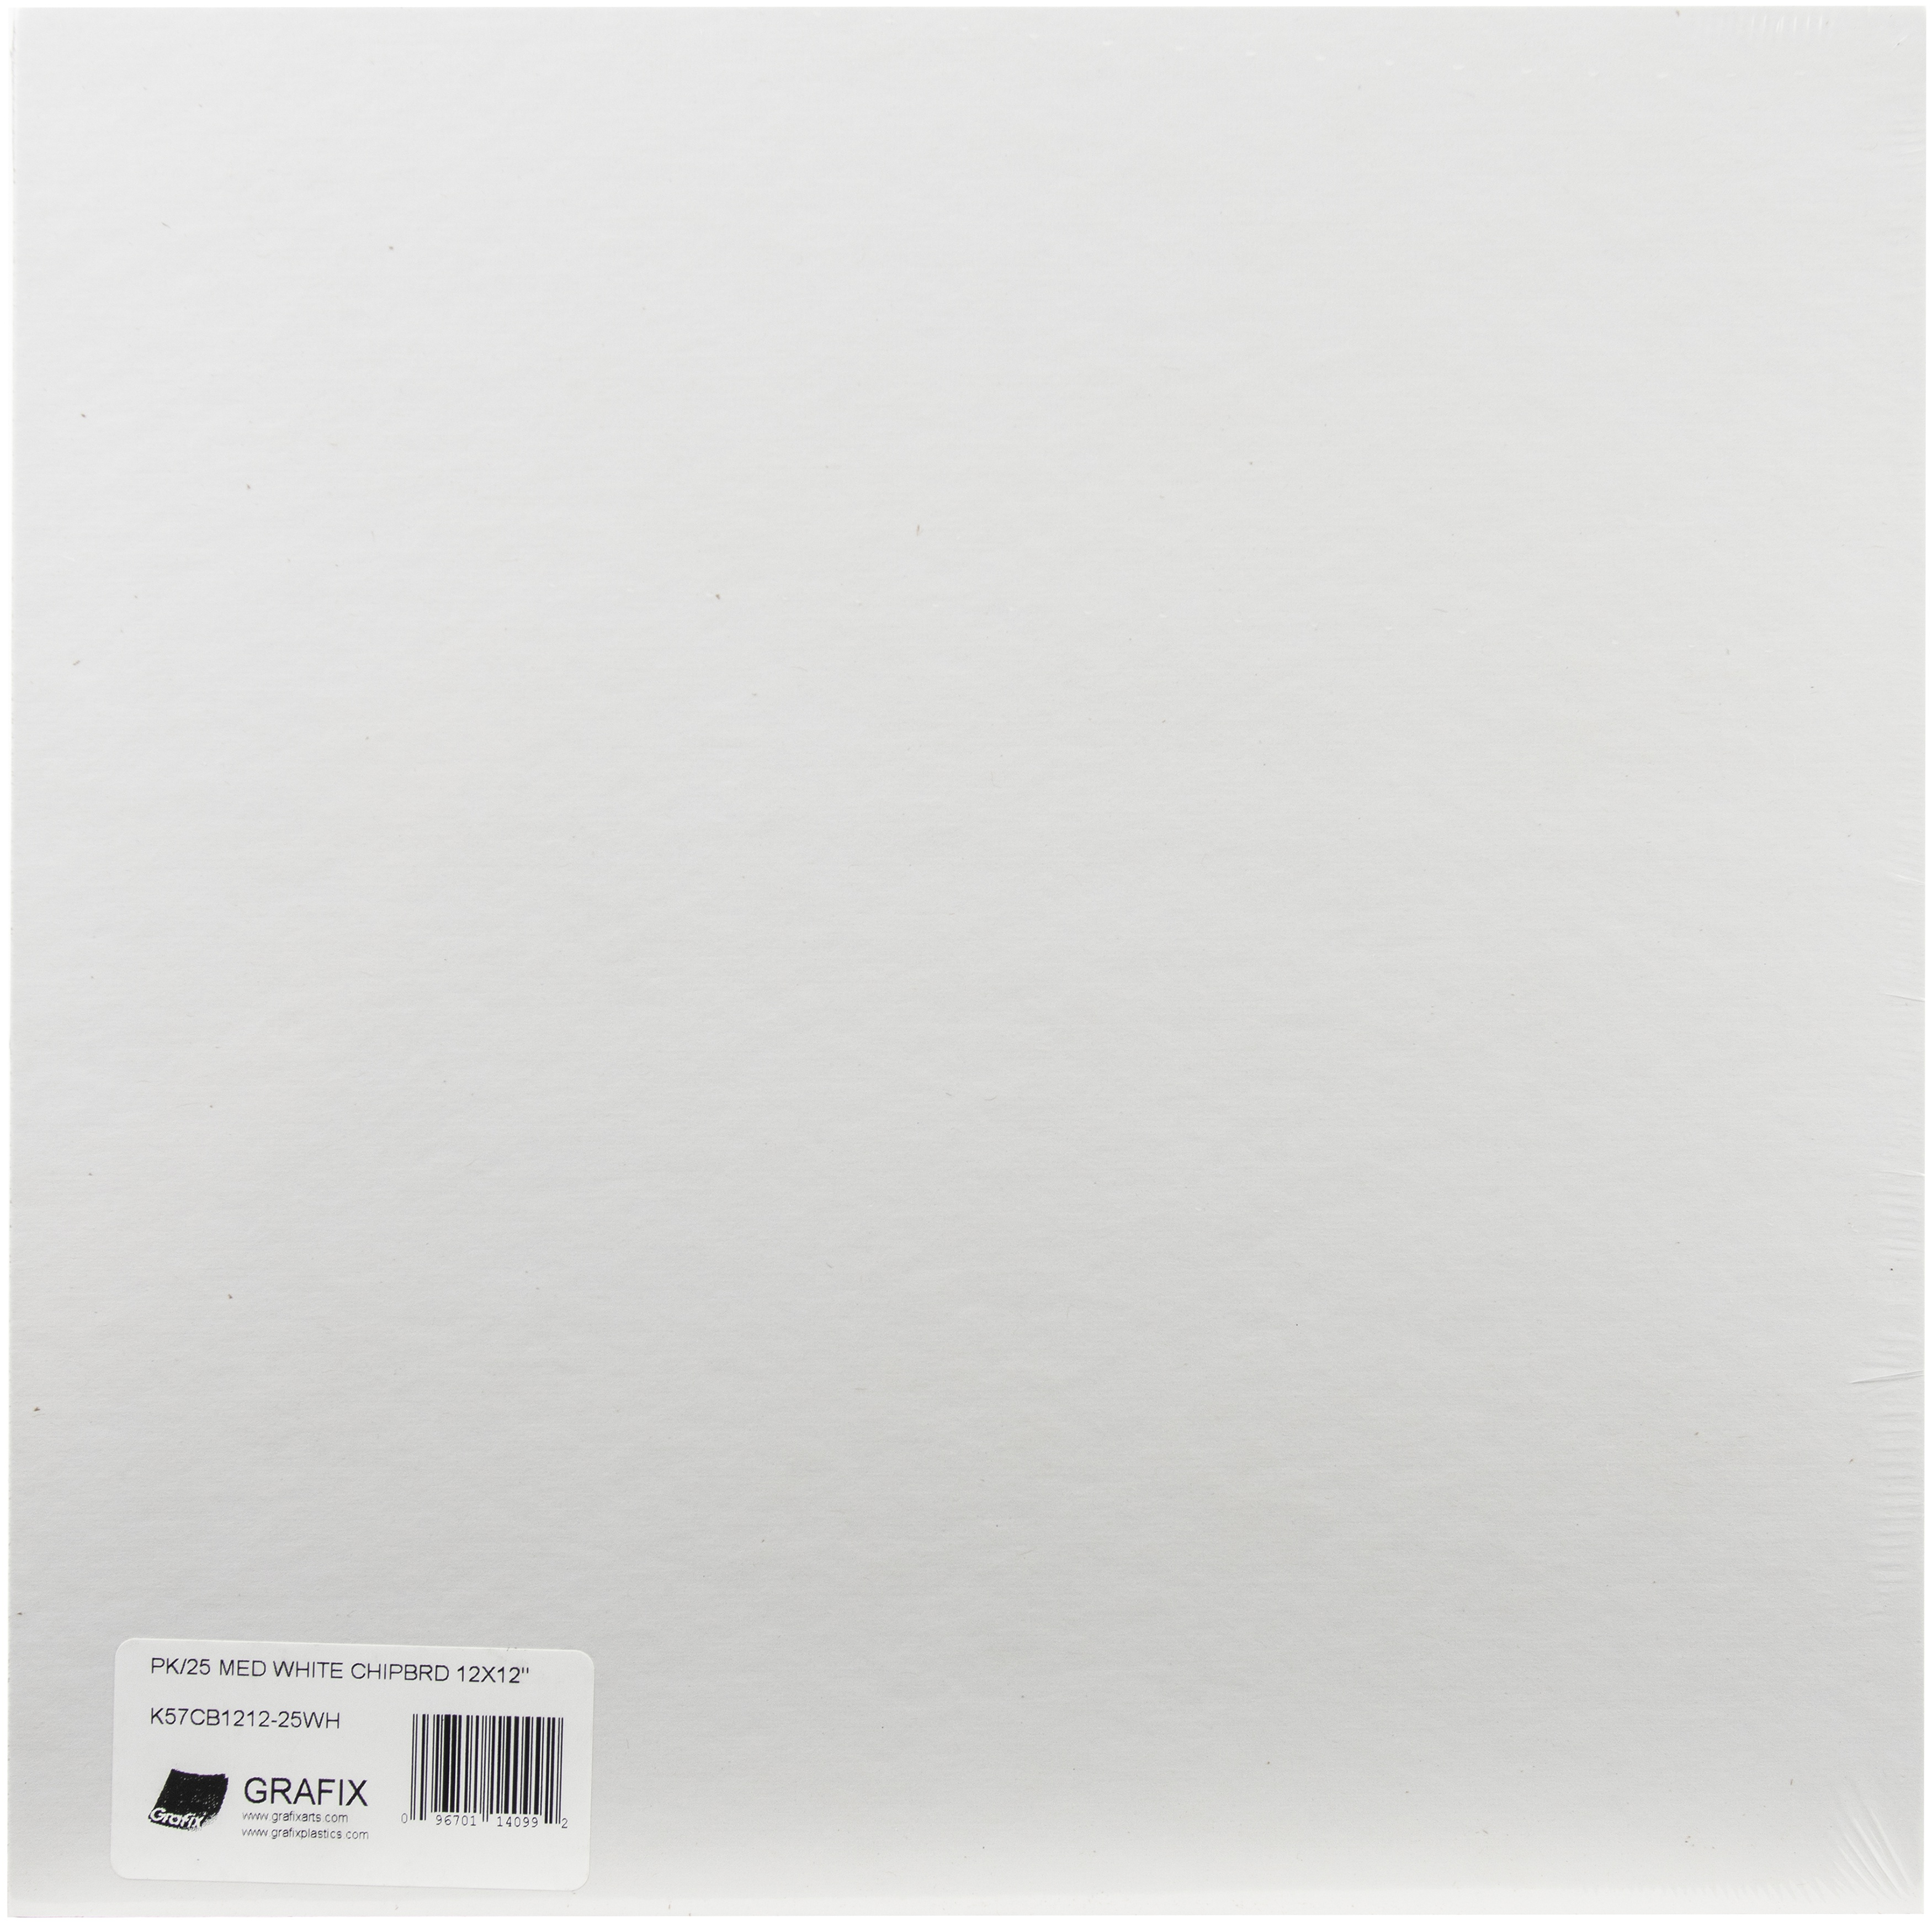 Grafix Medium Weight Chipboard Sheets 12X12 White